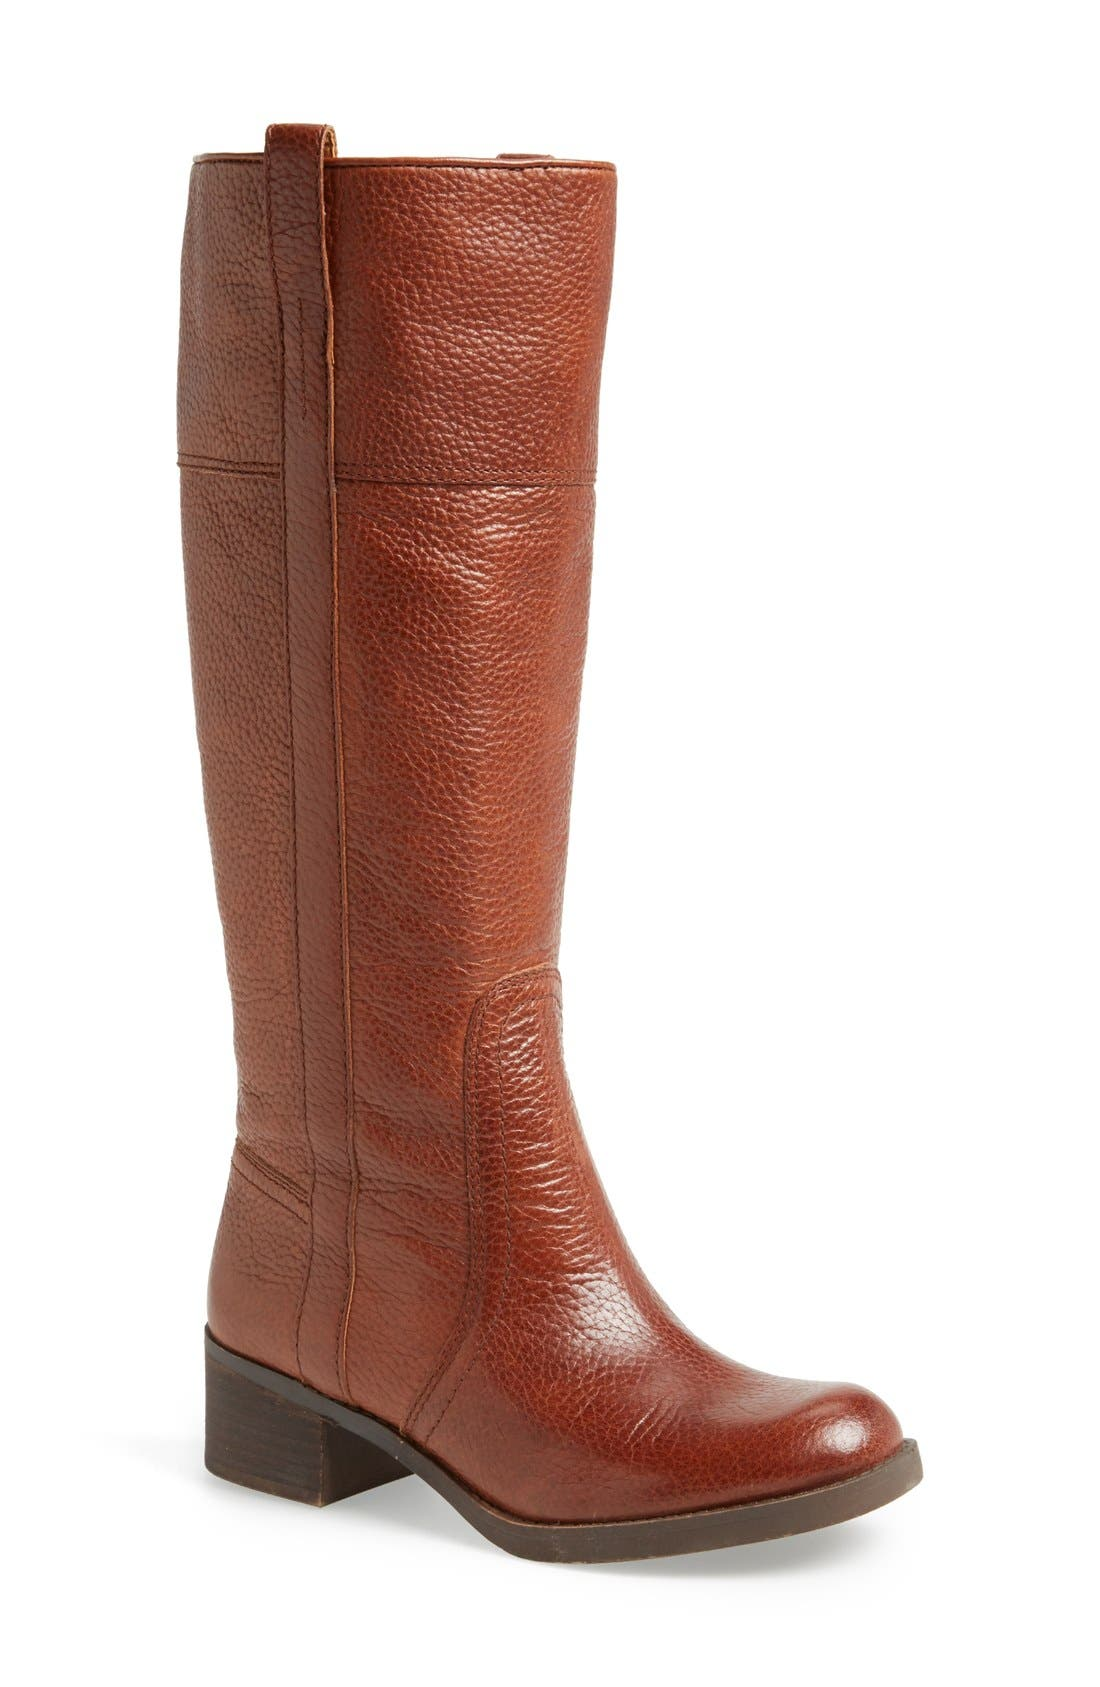 Alternate Image 1 Selected - Lucky Brand 'Hibiscus' Boot (Wide Calf)